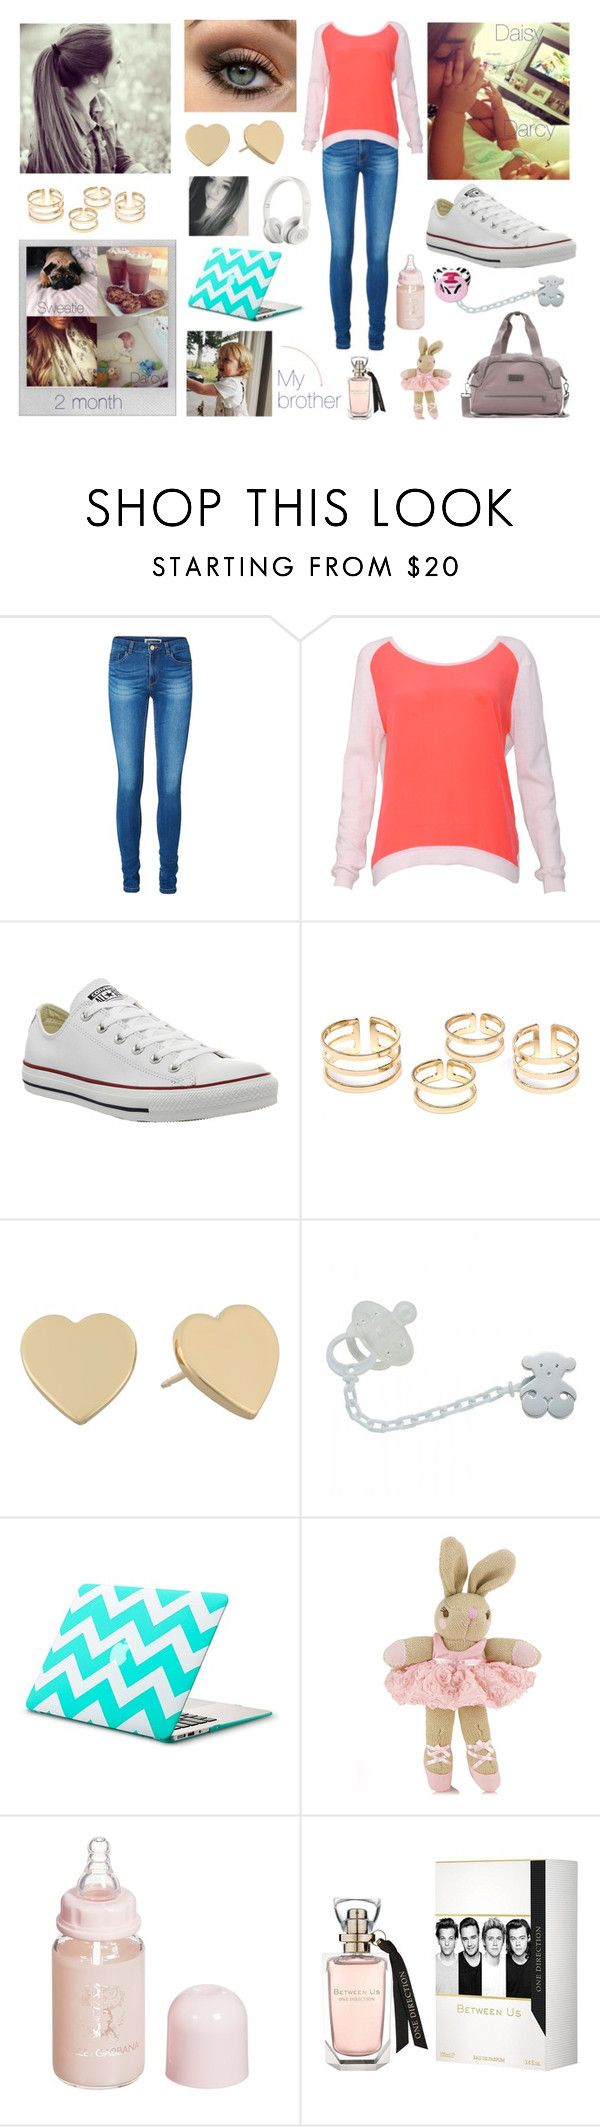 """Day with family (Darcy, Daisy, Fizzy Ernest )"" by louisericoul ❤ liked on Polyvore featuring Vero Moda, Sandro, Converse, Kate Spade, Polaroid, TOUS, Beats by Dr. Dre, Monsoon, Dolce&Gabbana and adidas"